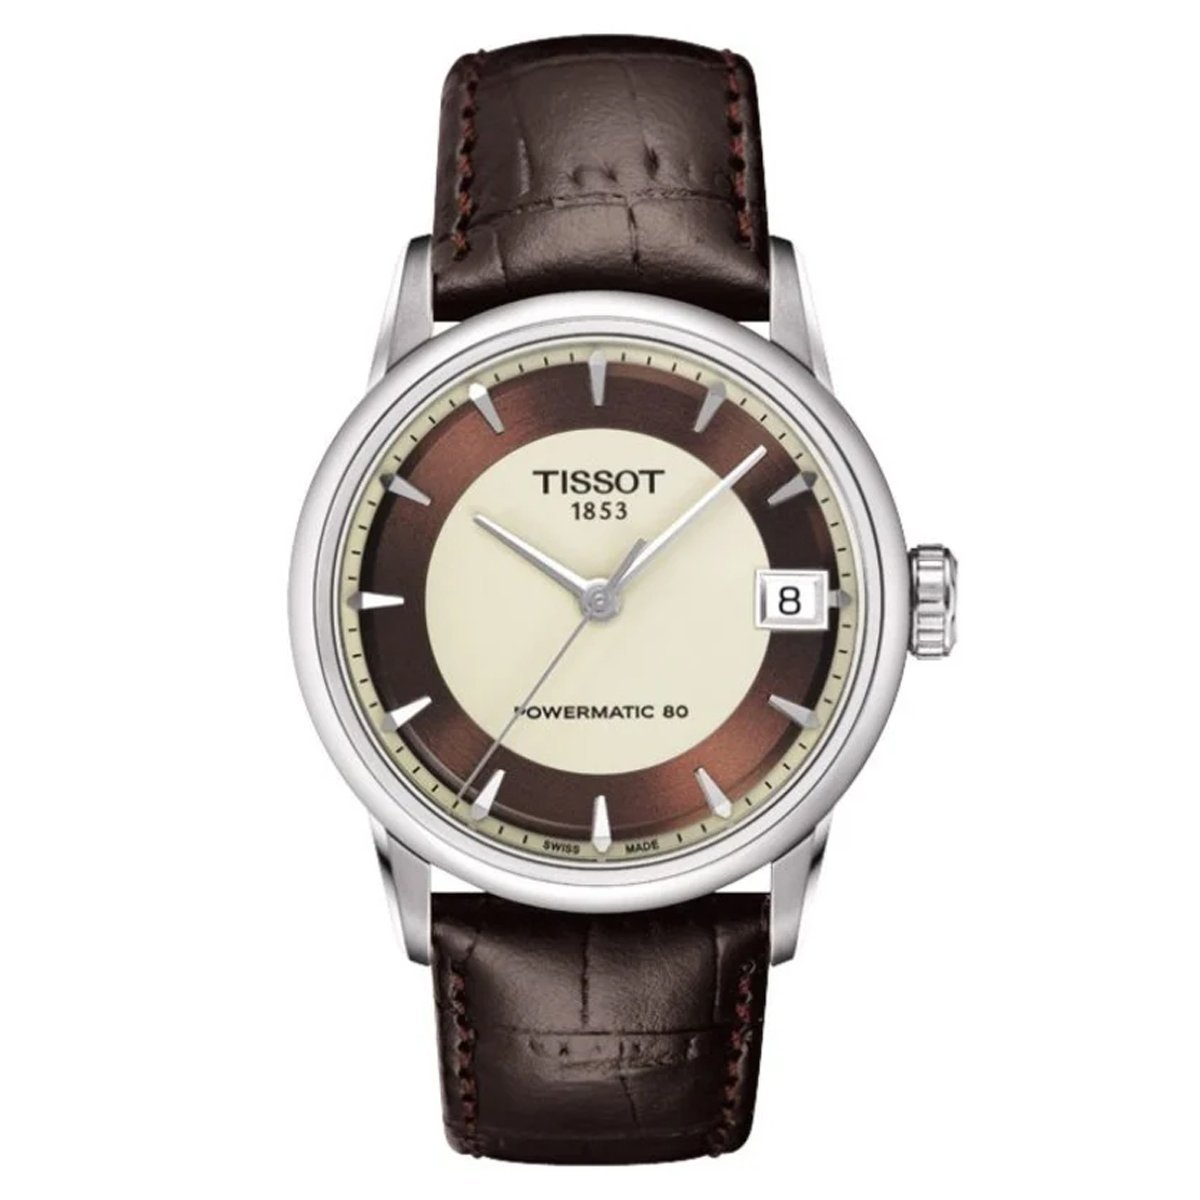 Tissot T-Classic Powermatic 80 Leather - Watches & Crystals